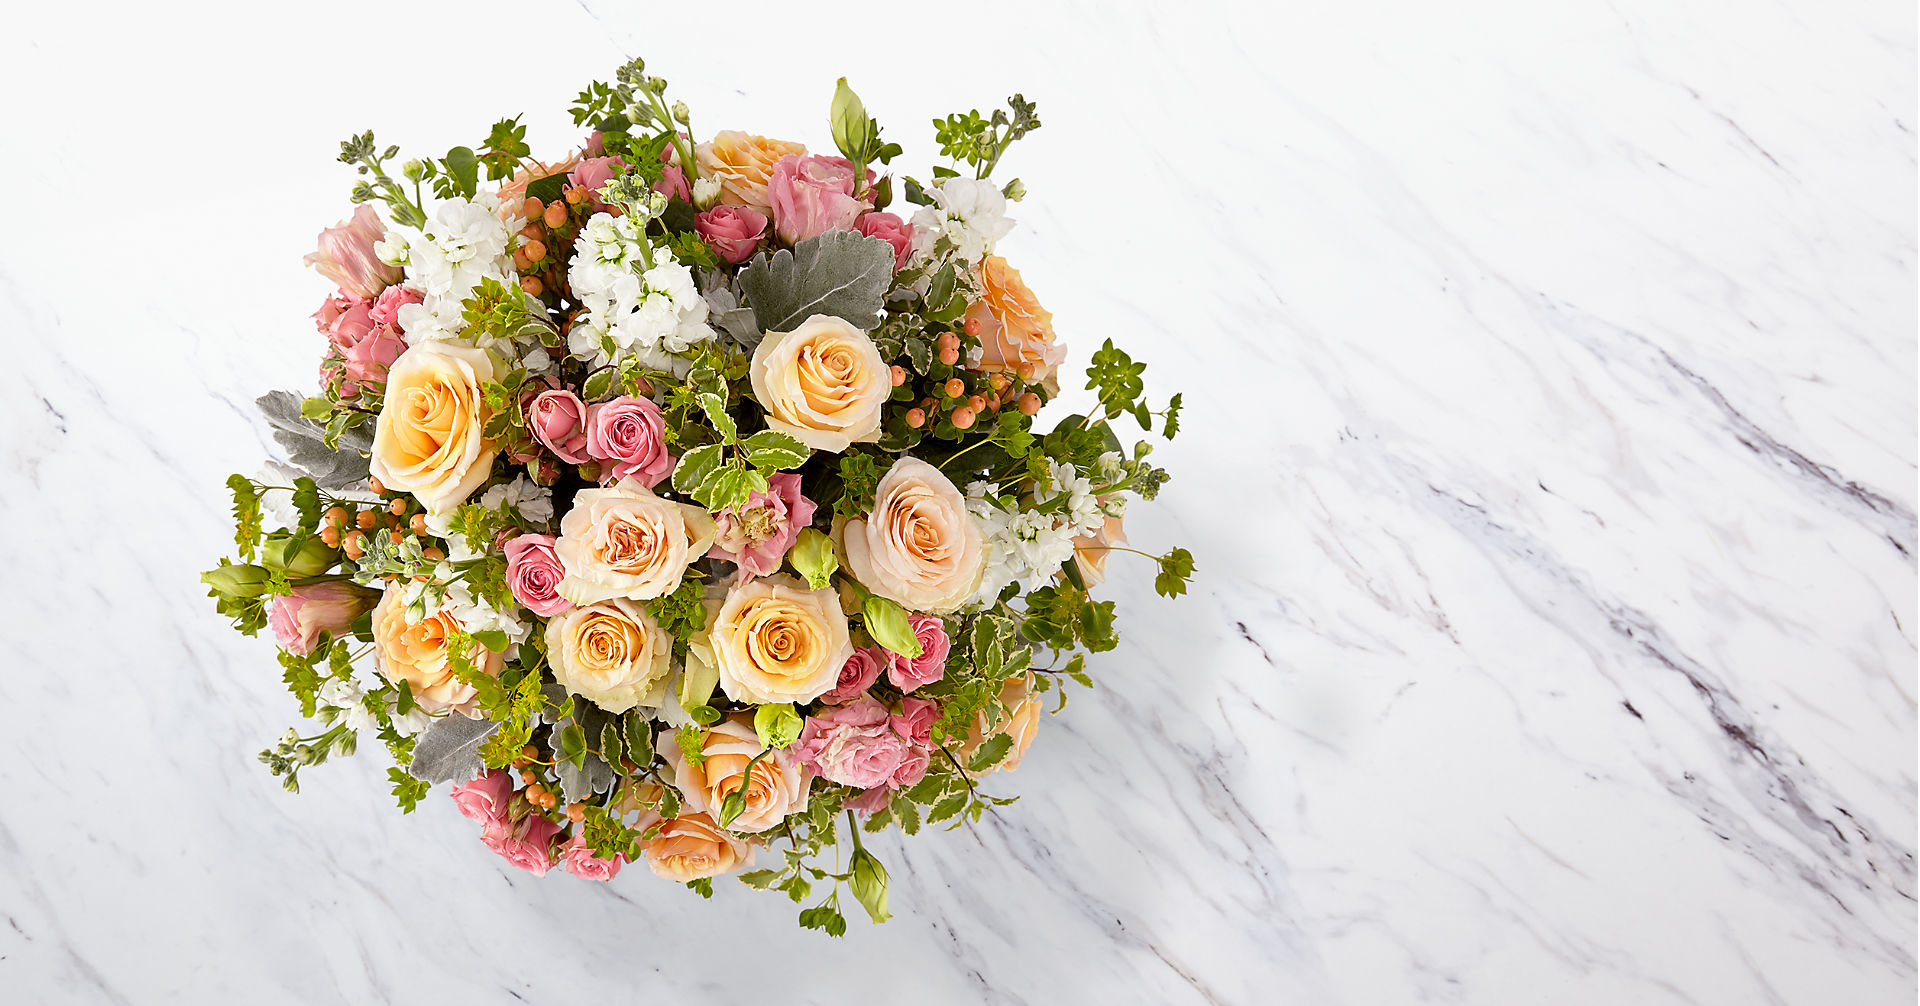 Ballad™ Luxury Bouquet - Deluxe - Image 2 Of 3